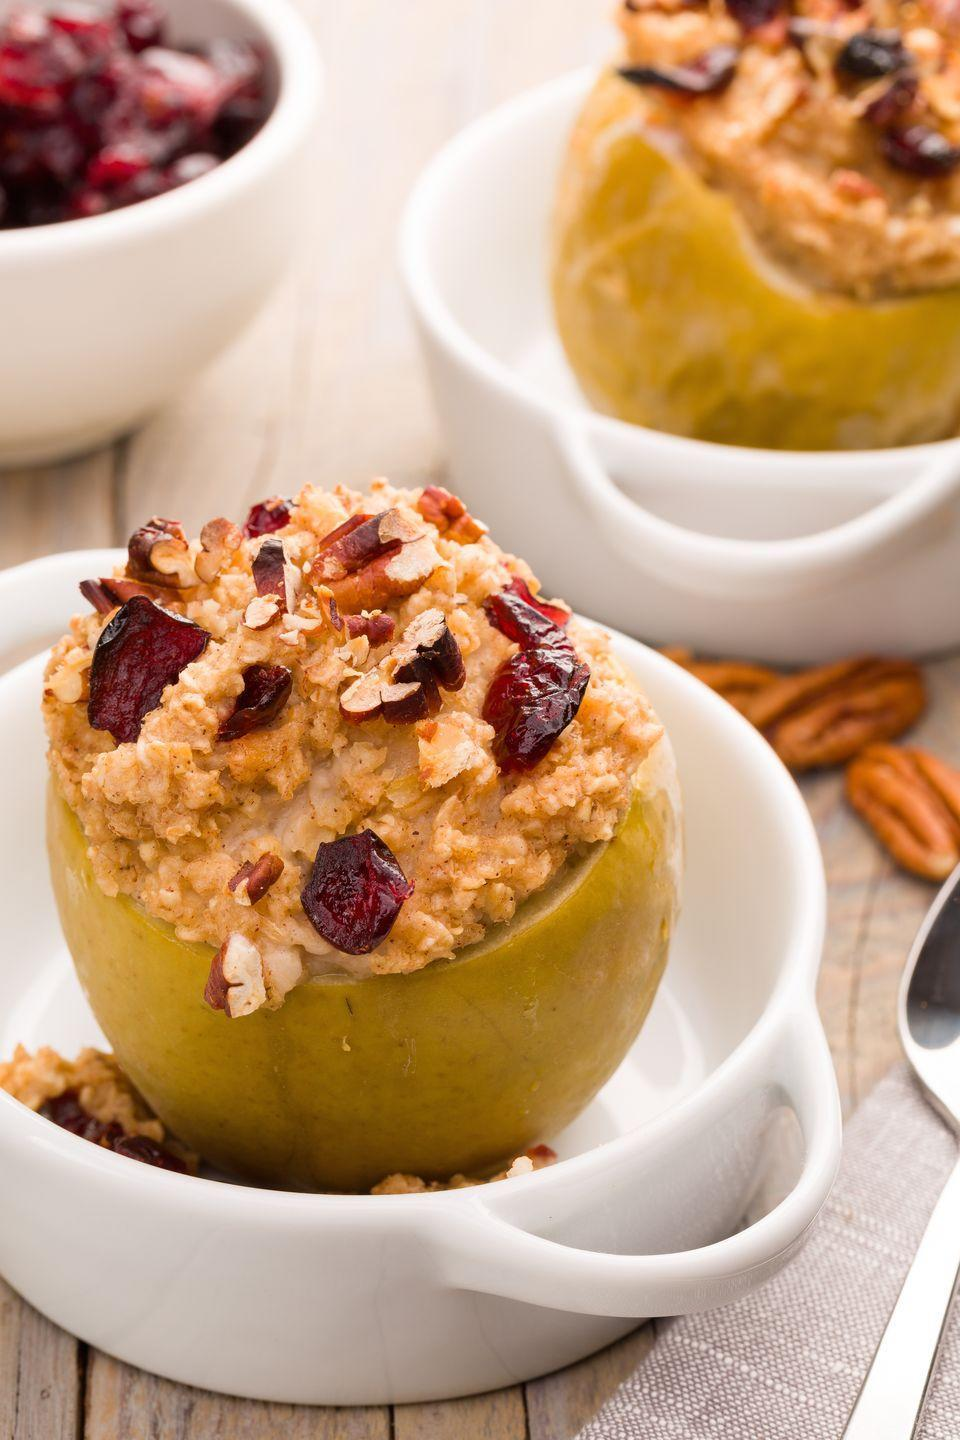 "<p>We always prefer bowls we can eat.</p><p>Get the recipe from <a href=""https://www.delish.com/cooking/recipe-ideas/recipes/a43872/breakfast-baked-apples-recipe/"" rel=""nofollow noopener"" target=""_blank"" data-ylk=""slk:Delish"" class=""link rapid-noclick-resp"">Delish</a>.<br></p>"